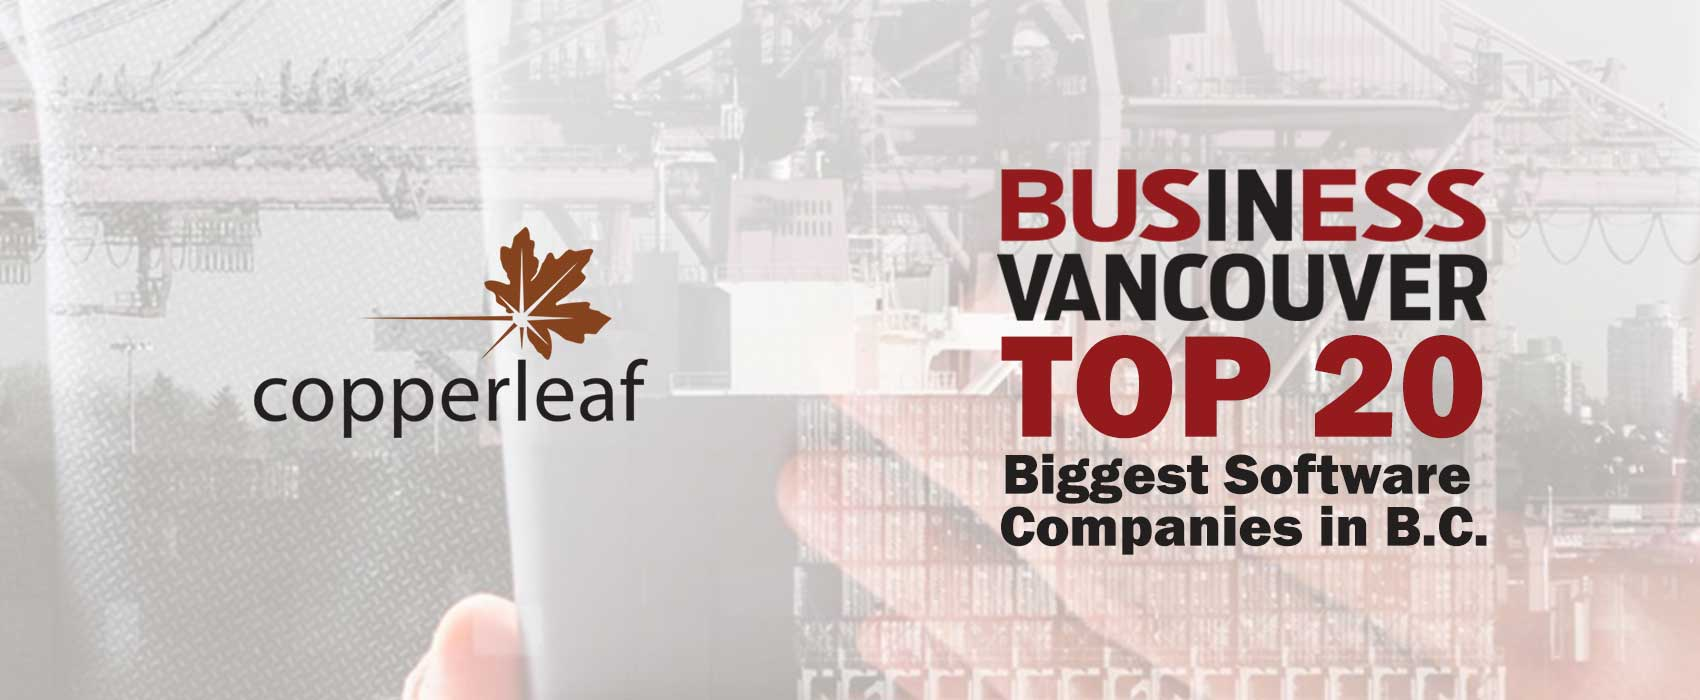 Image for Copperleaf Ranks in the Top 20 Biggest Software Companies in B.C.